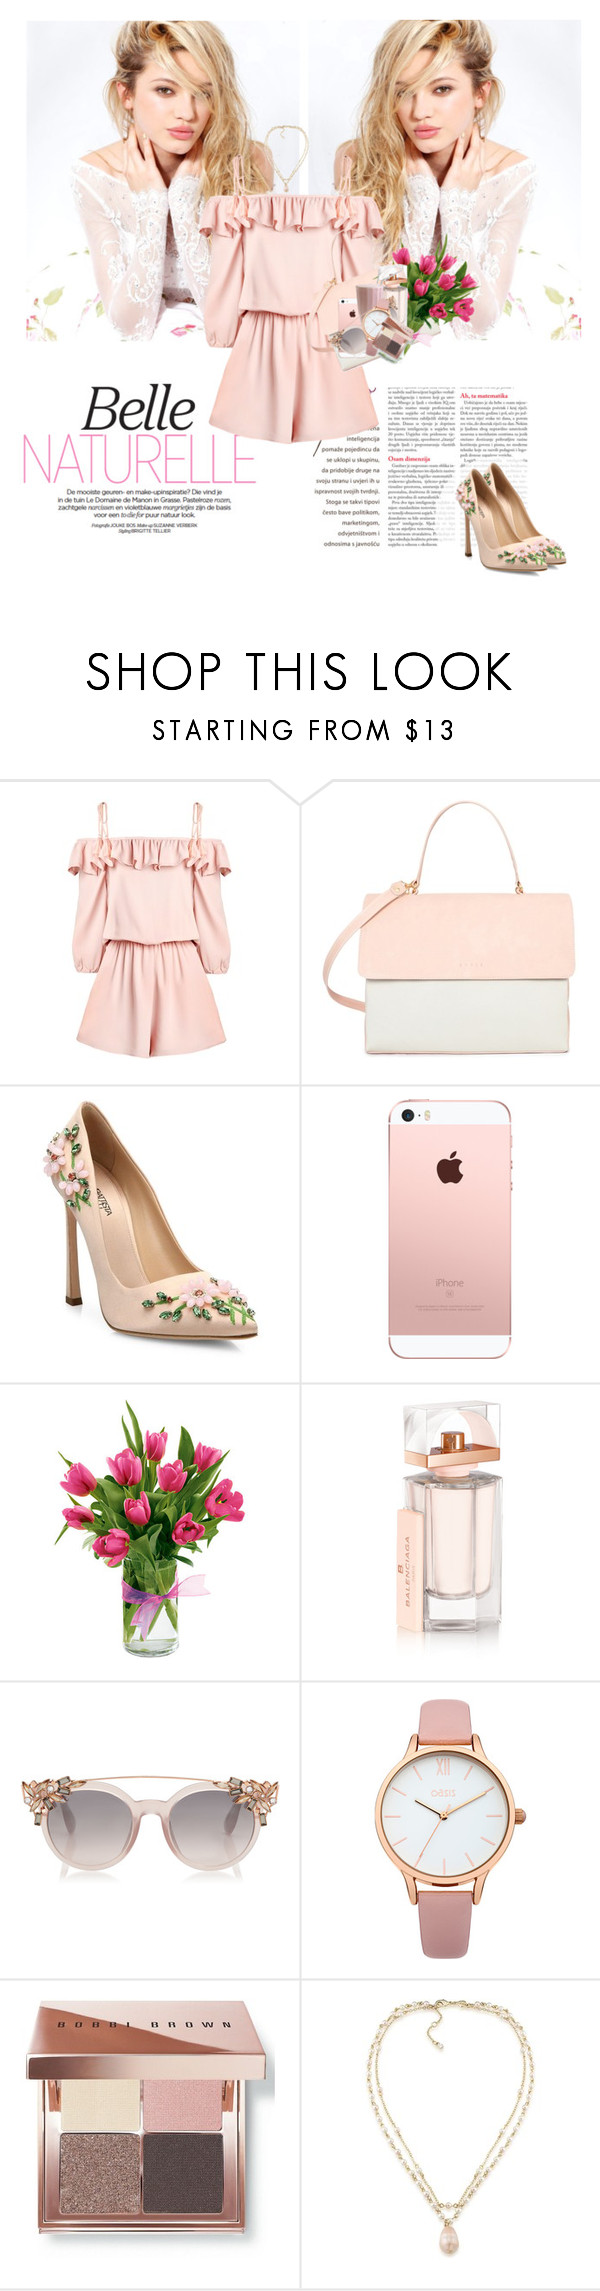 """New chance"" by ddaisy-271 ❤ liked on Polyvore featuring Silvana, Eddie, Giambattista Valli, Balenciaga, Oasis, Bobbi Brown Cosmetics and Carolee"